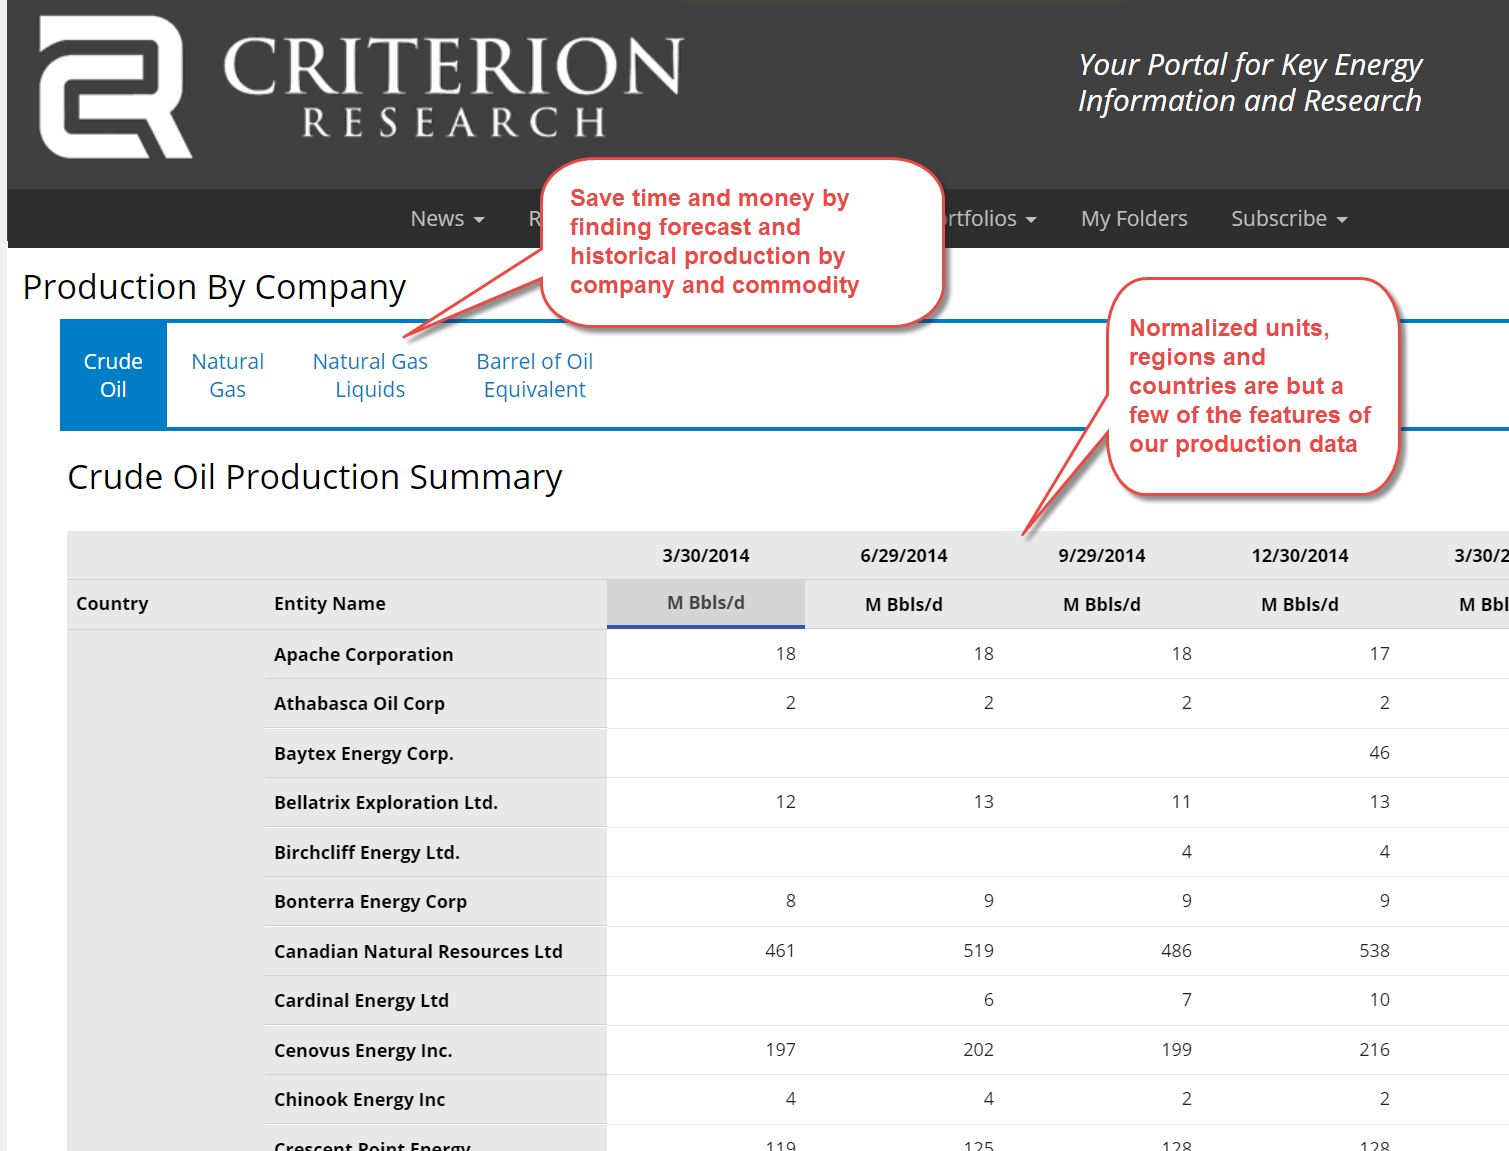 Criterion's Production By Company